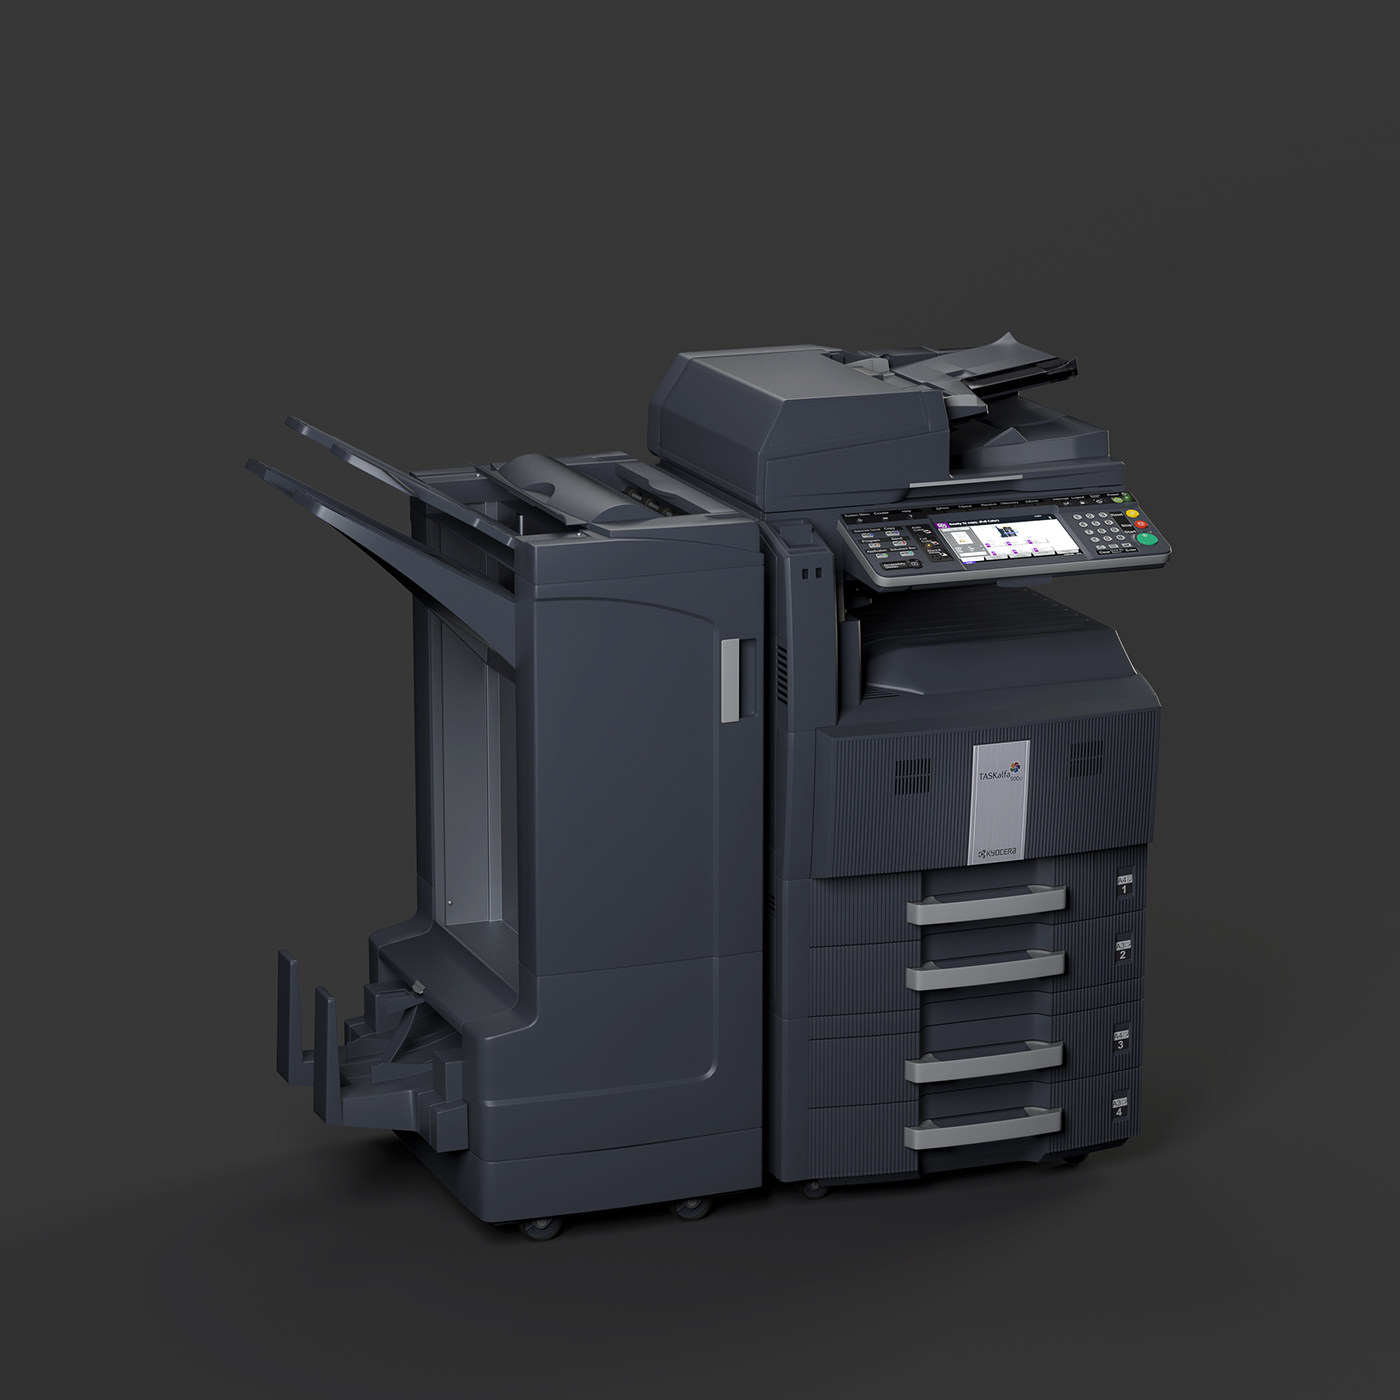 kyocera,showme,printer,3D